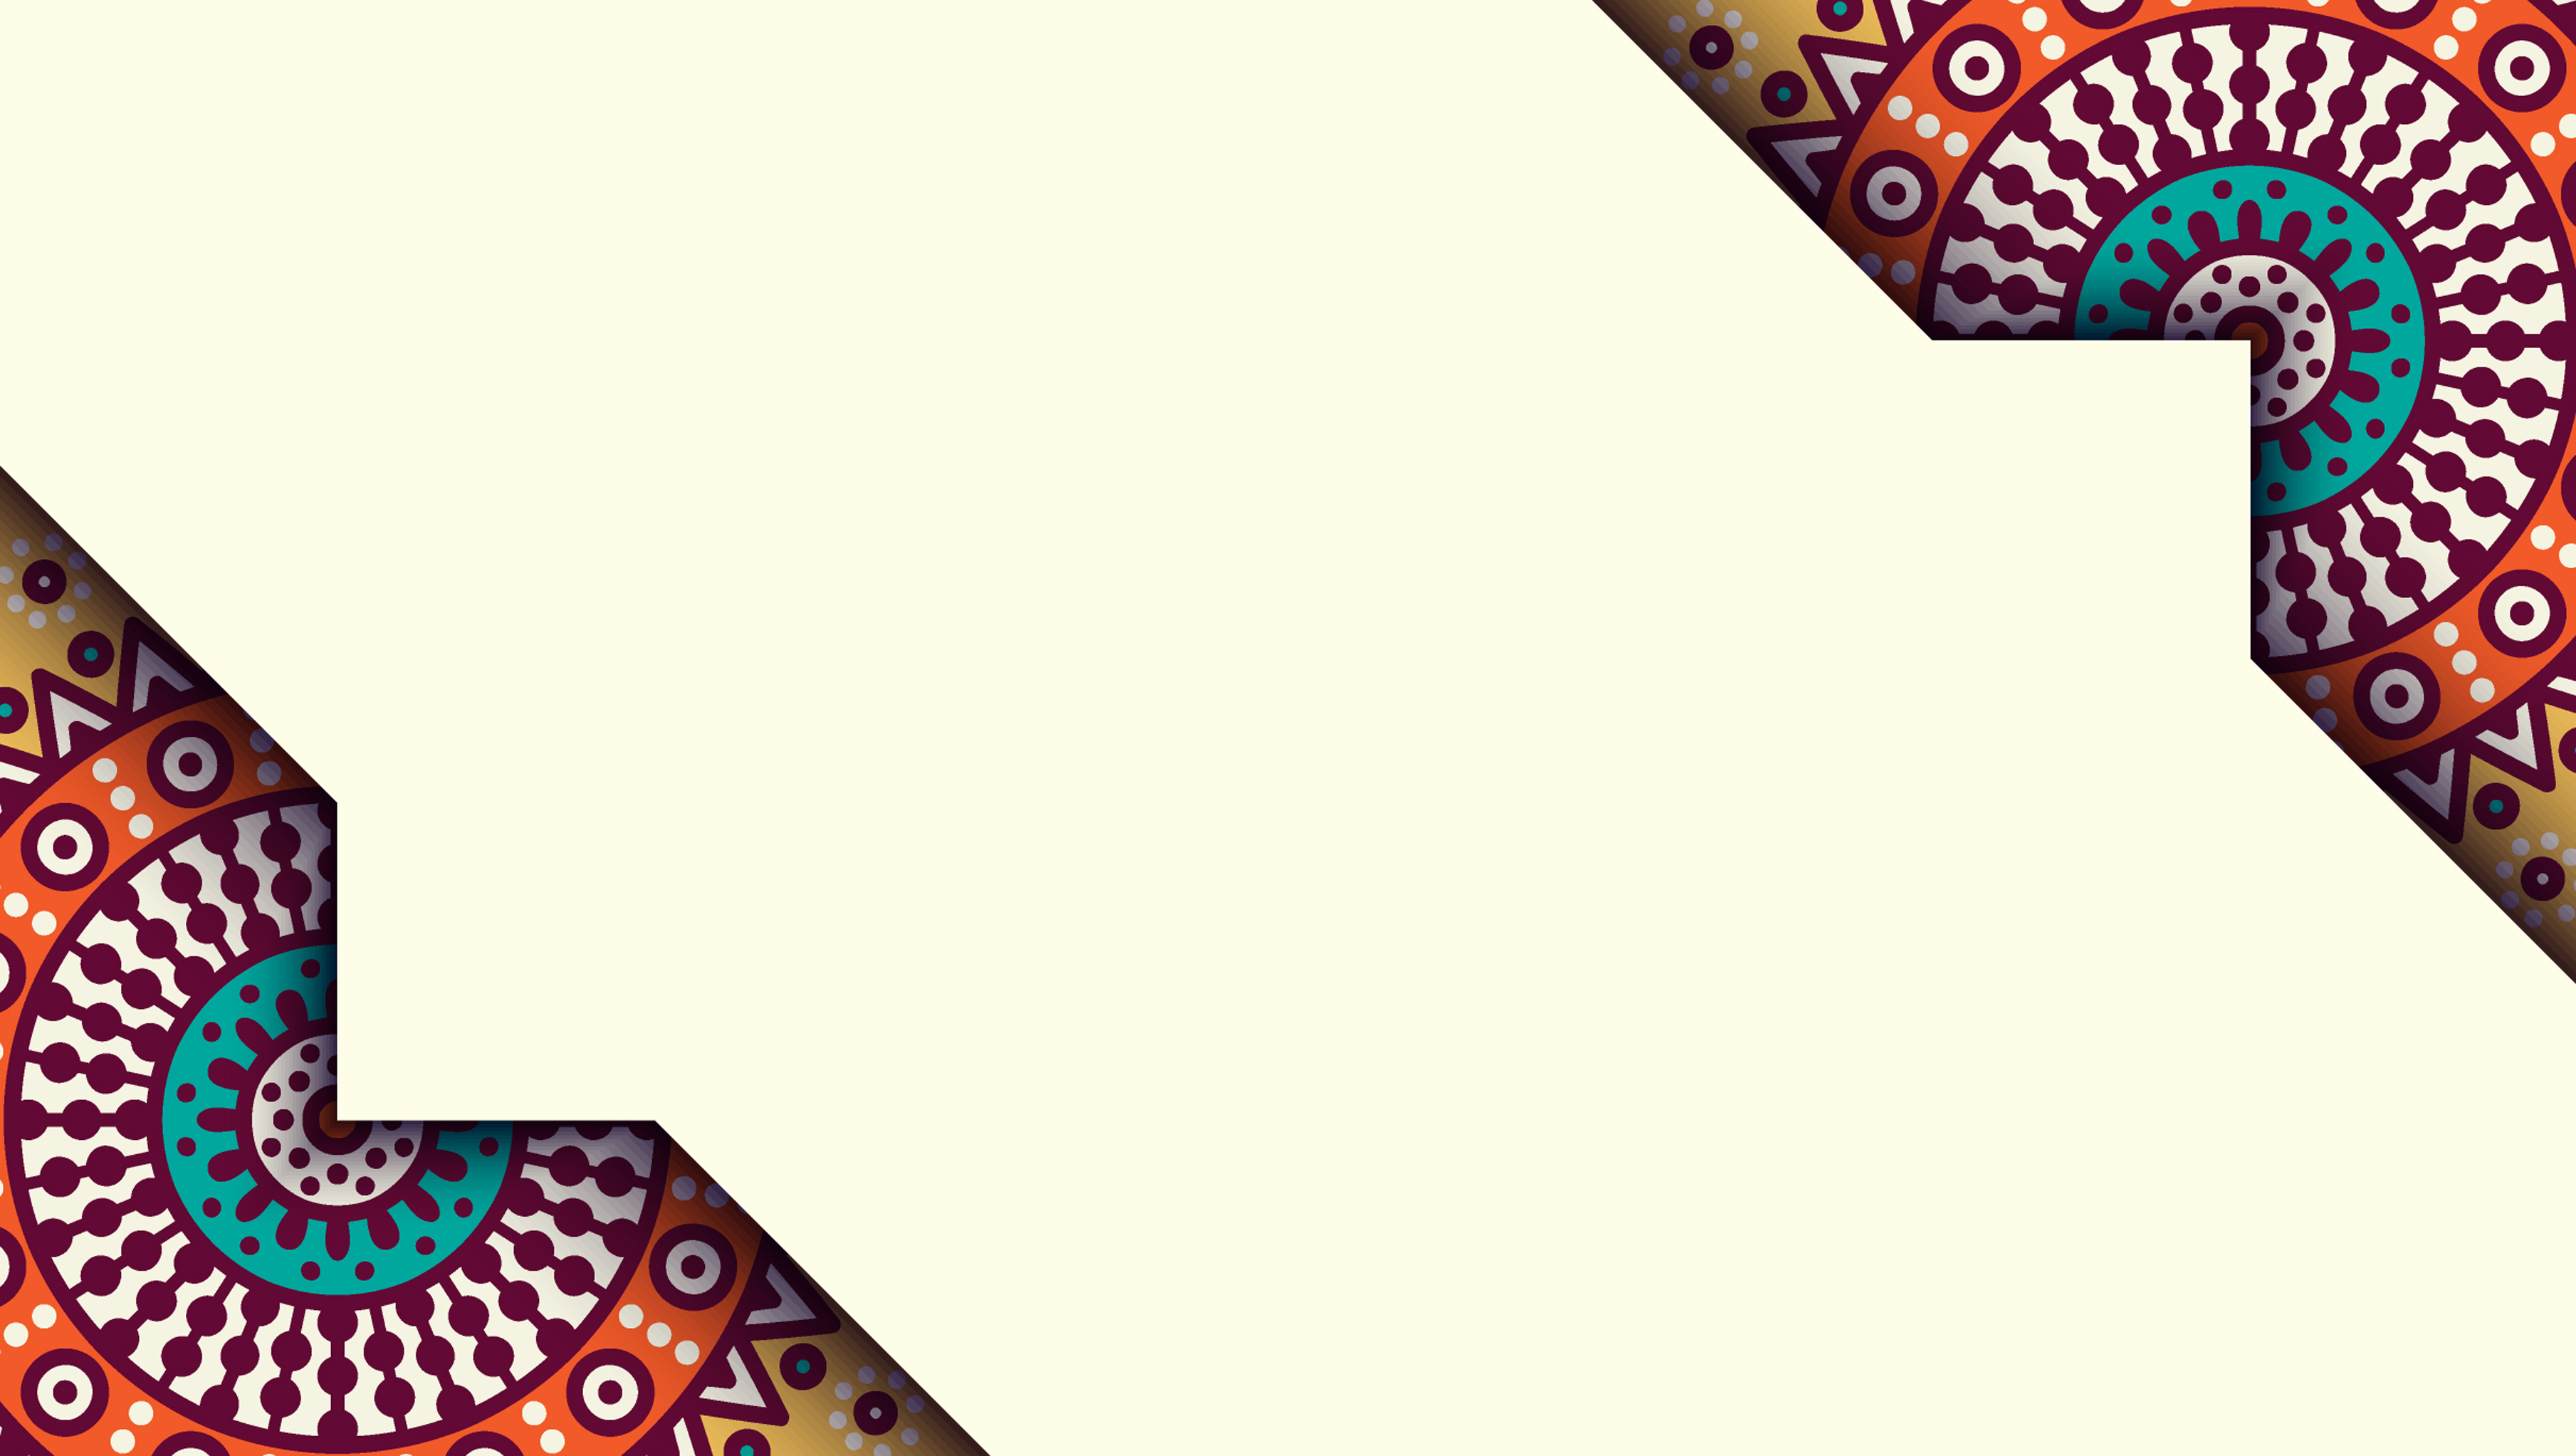 personalized cards ethnic pattern background material